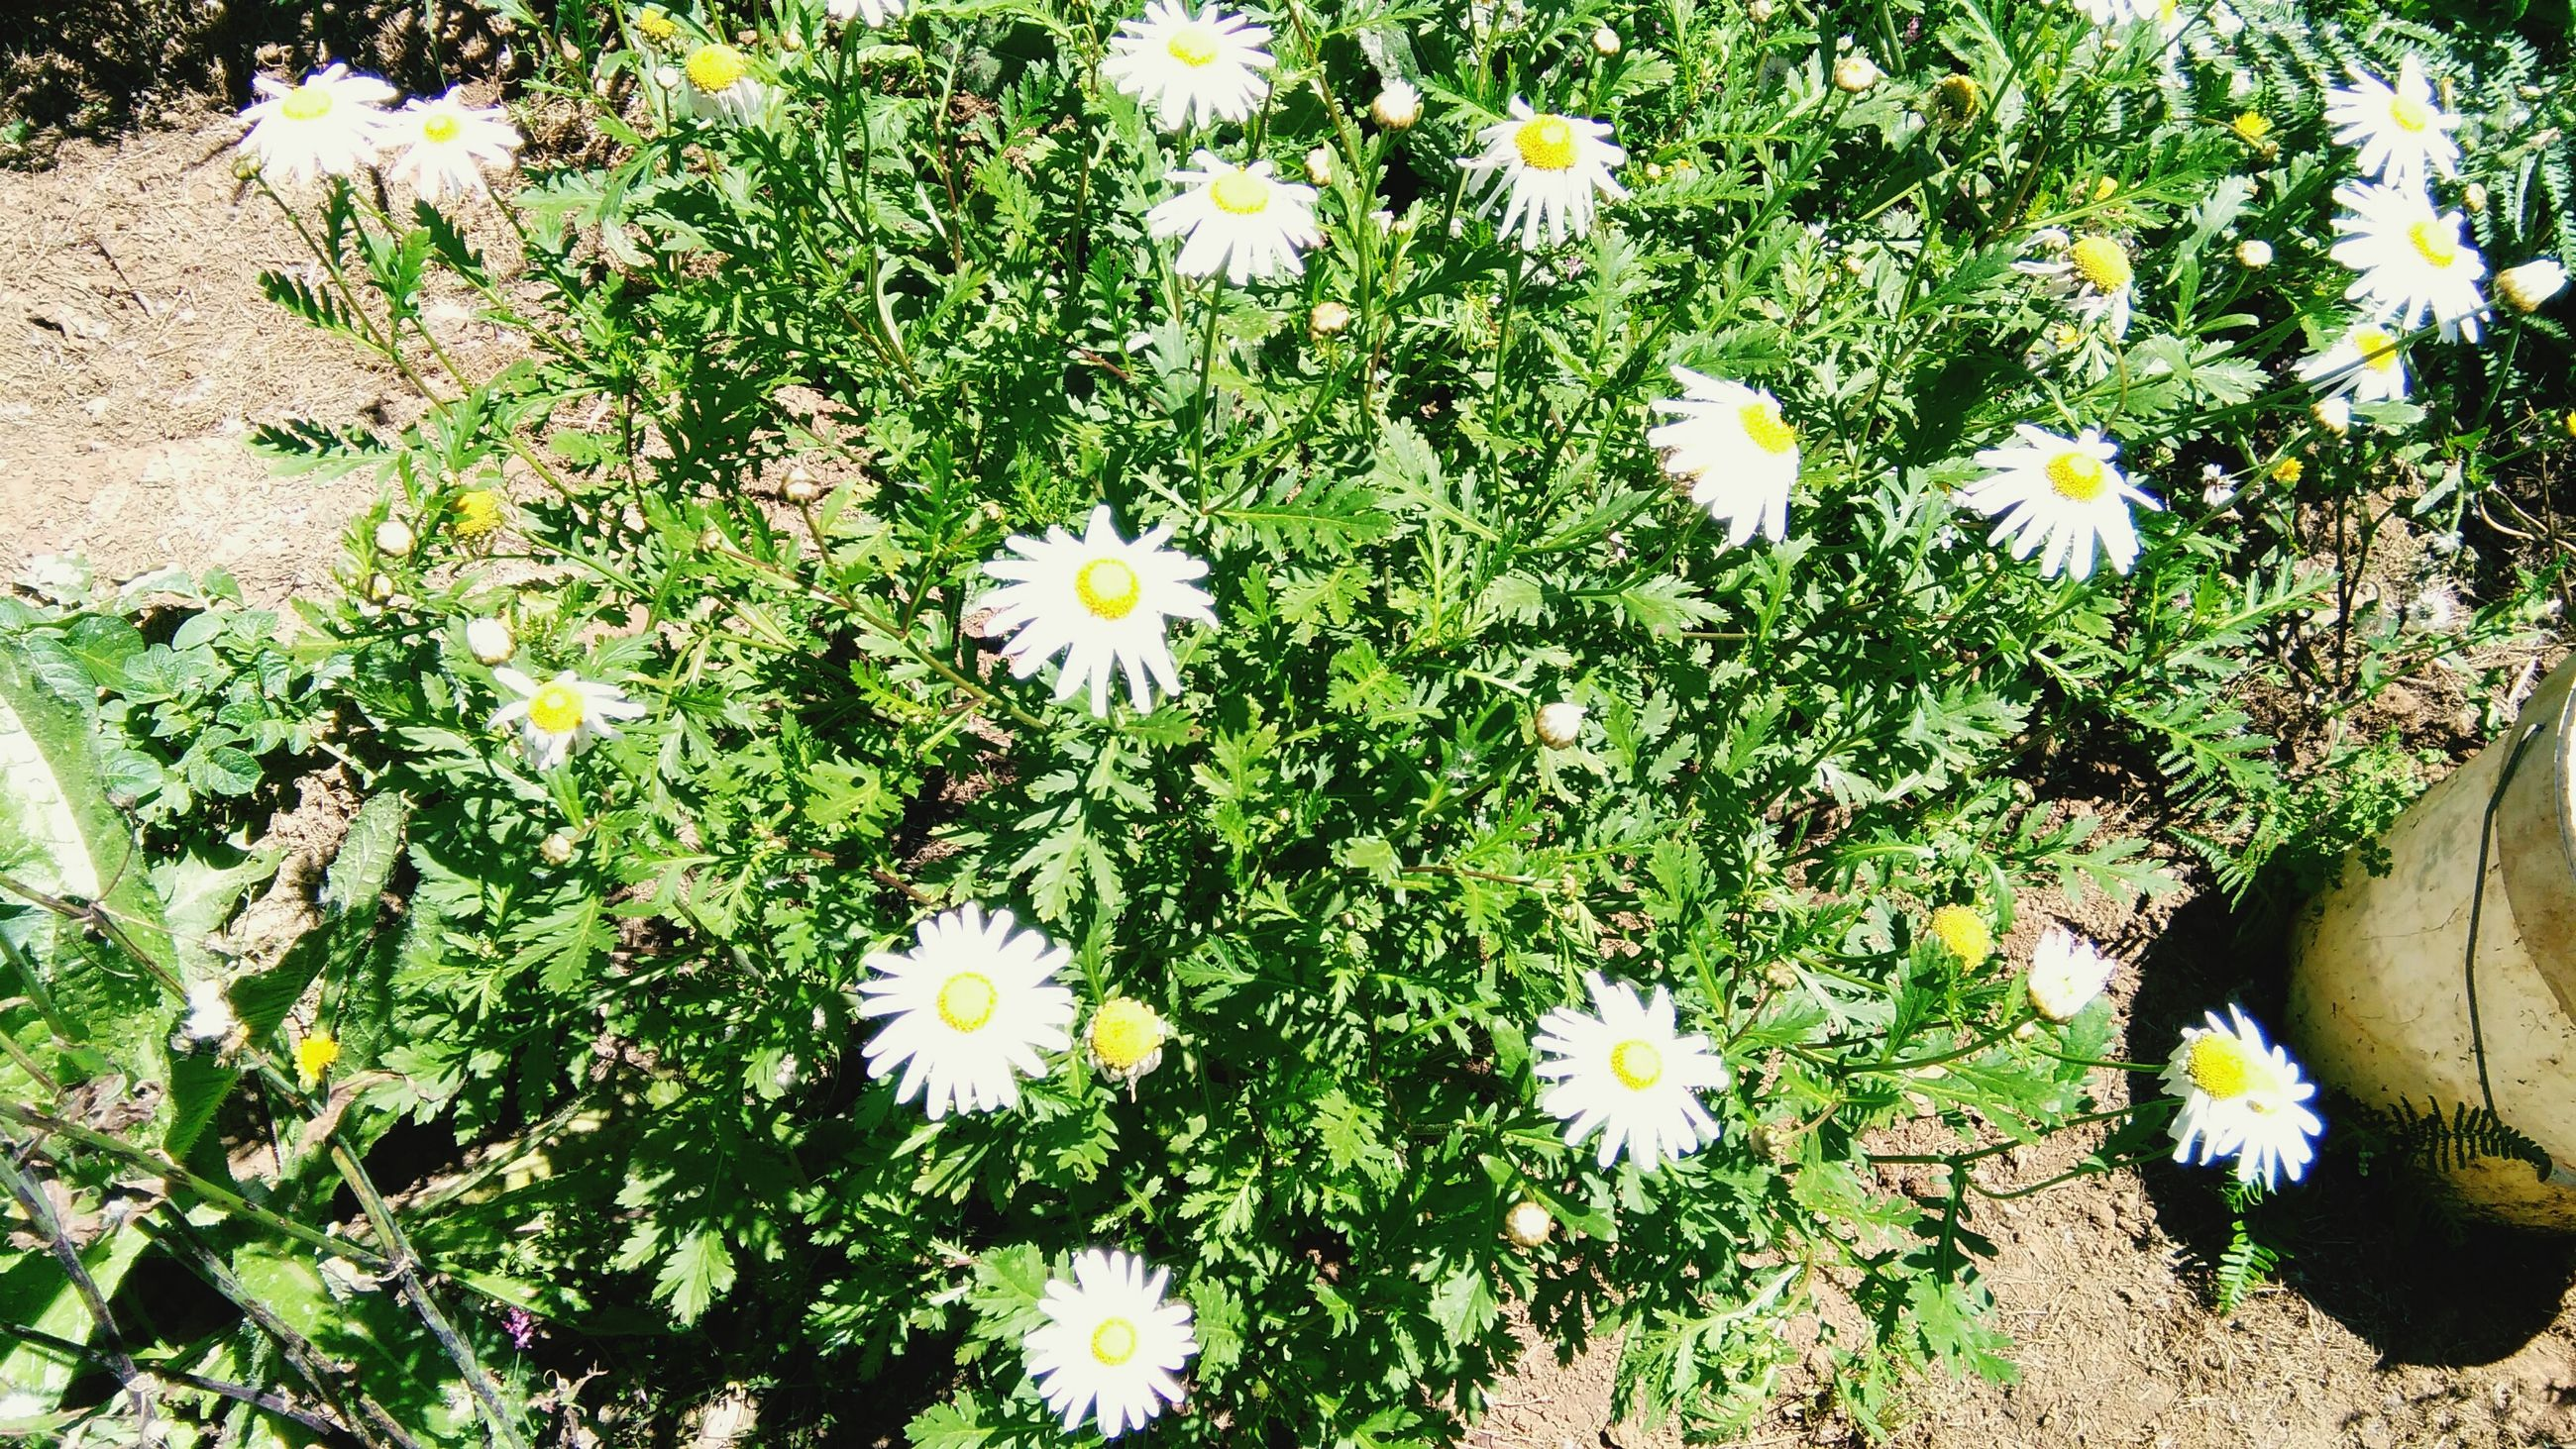 flower, growth, freshness, fragility, plant, white color, high angle view, petal, daisy, beauty in nature, flower head, nature, blooming, field, leaf, green color, grass, in bloom, day, outdoors